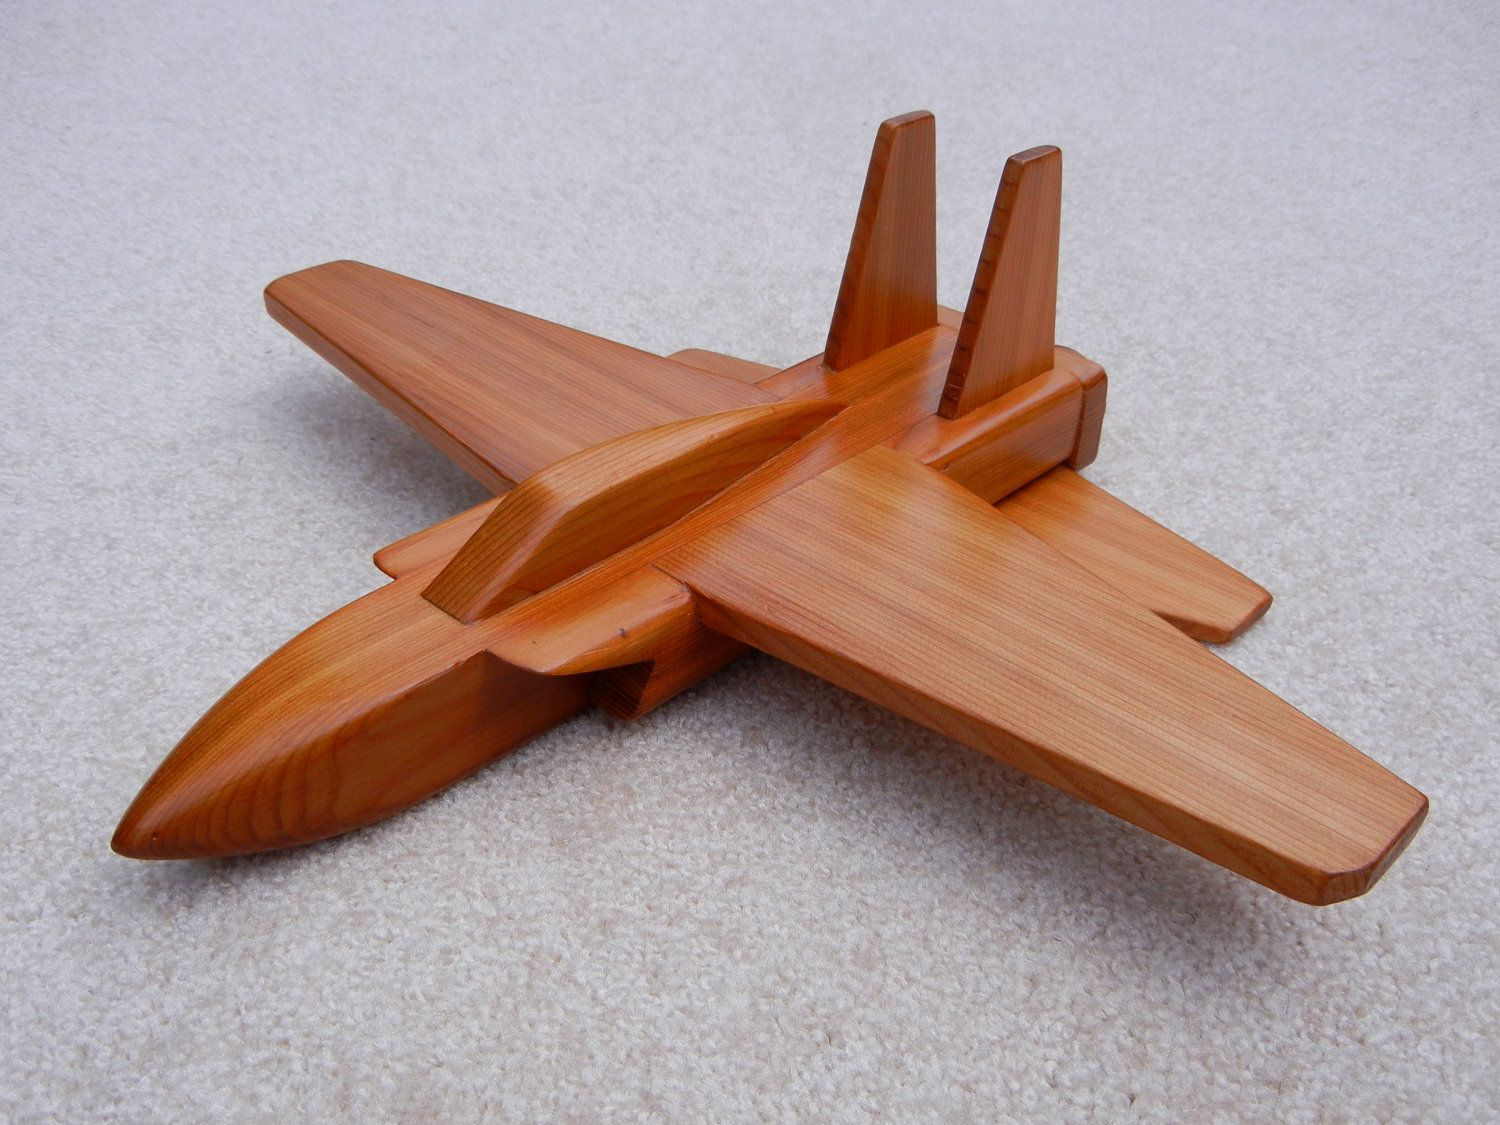 Wooden Jet Airplane Toy Cedar Wood Toys Airplane